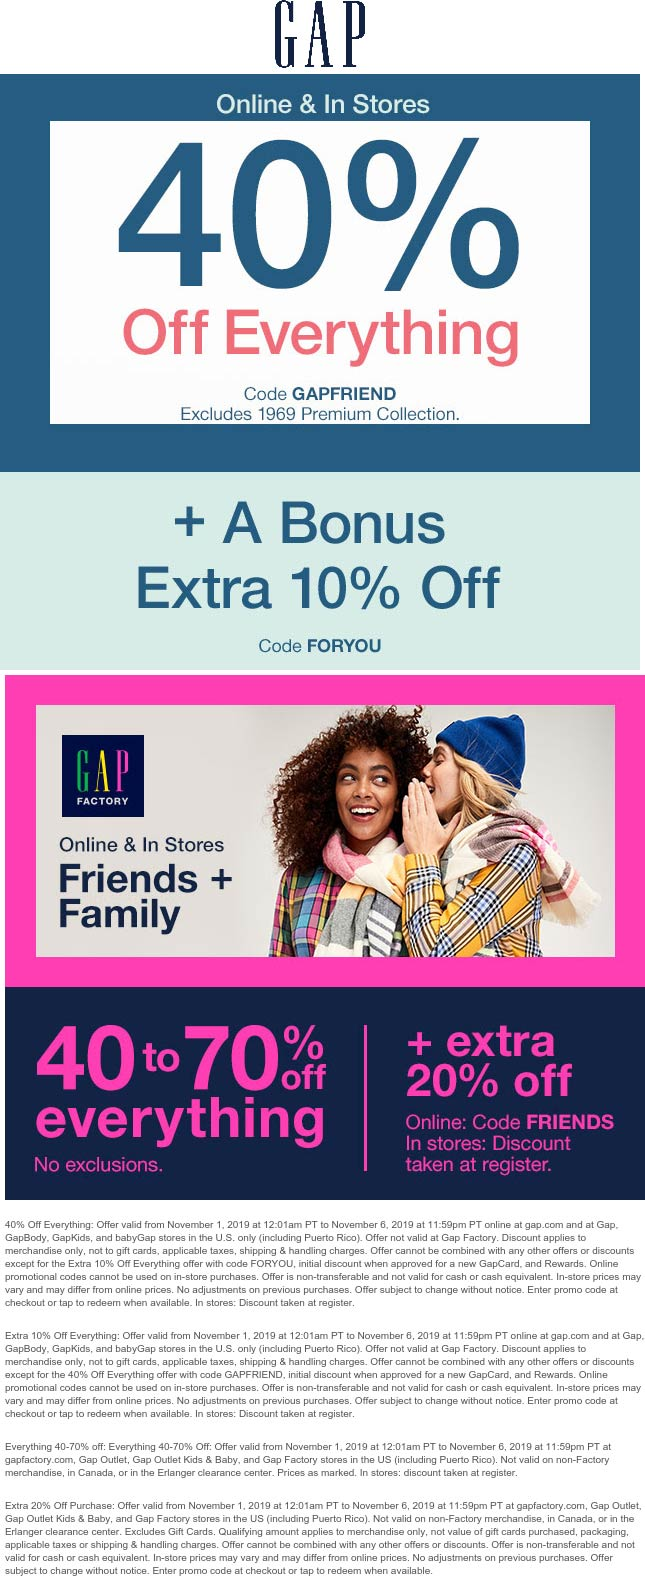 Gap Coupon January 2020 40% off everything at Gap & factory locations, or online via promo code GAPFRIEND